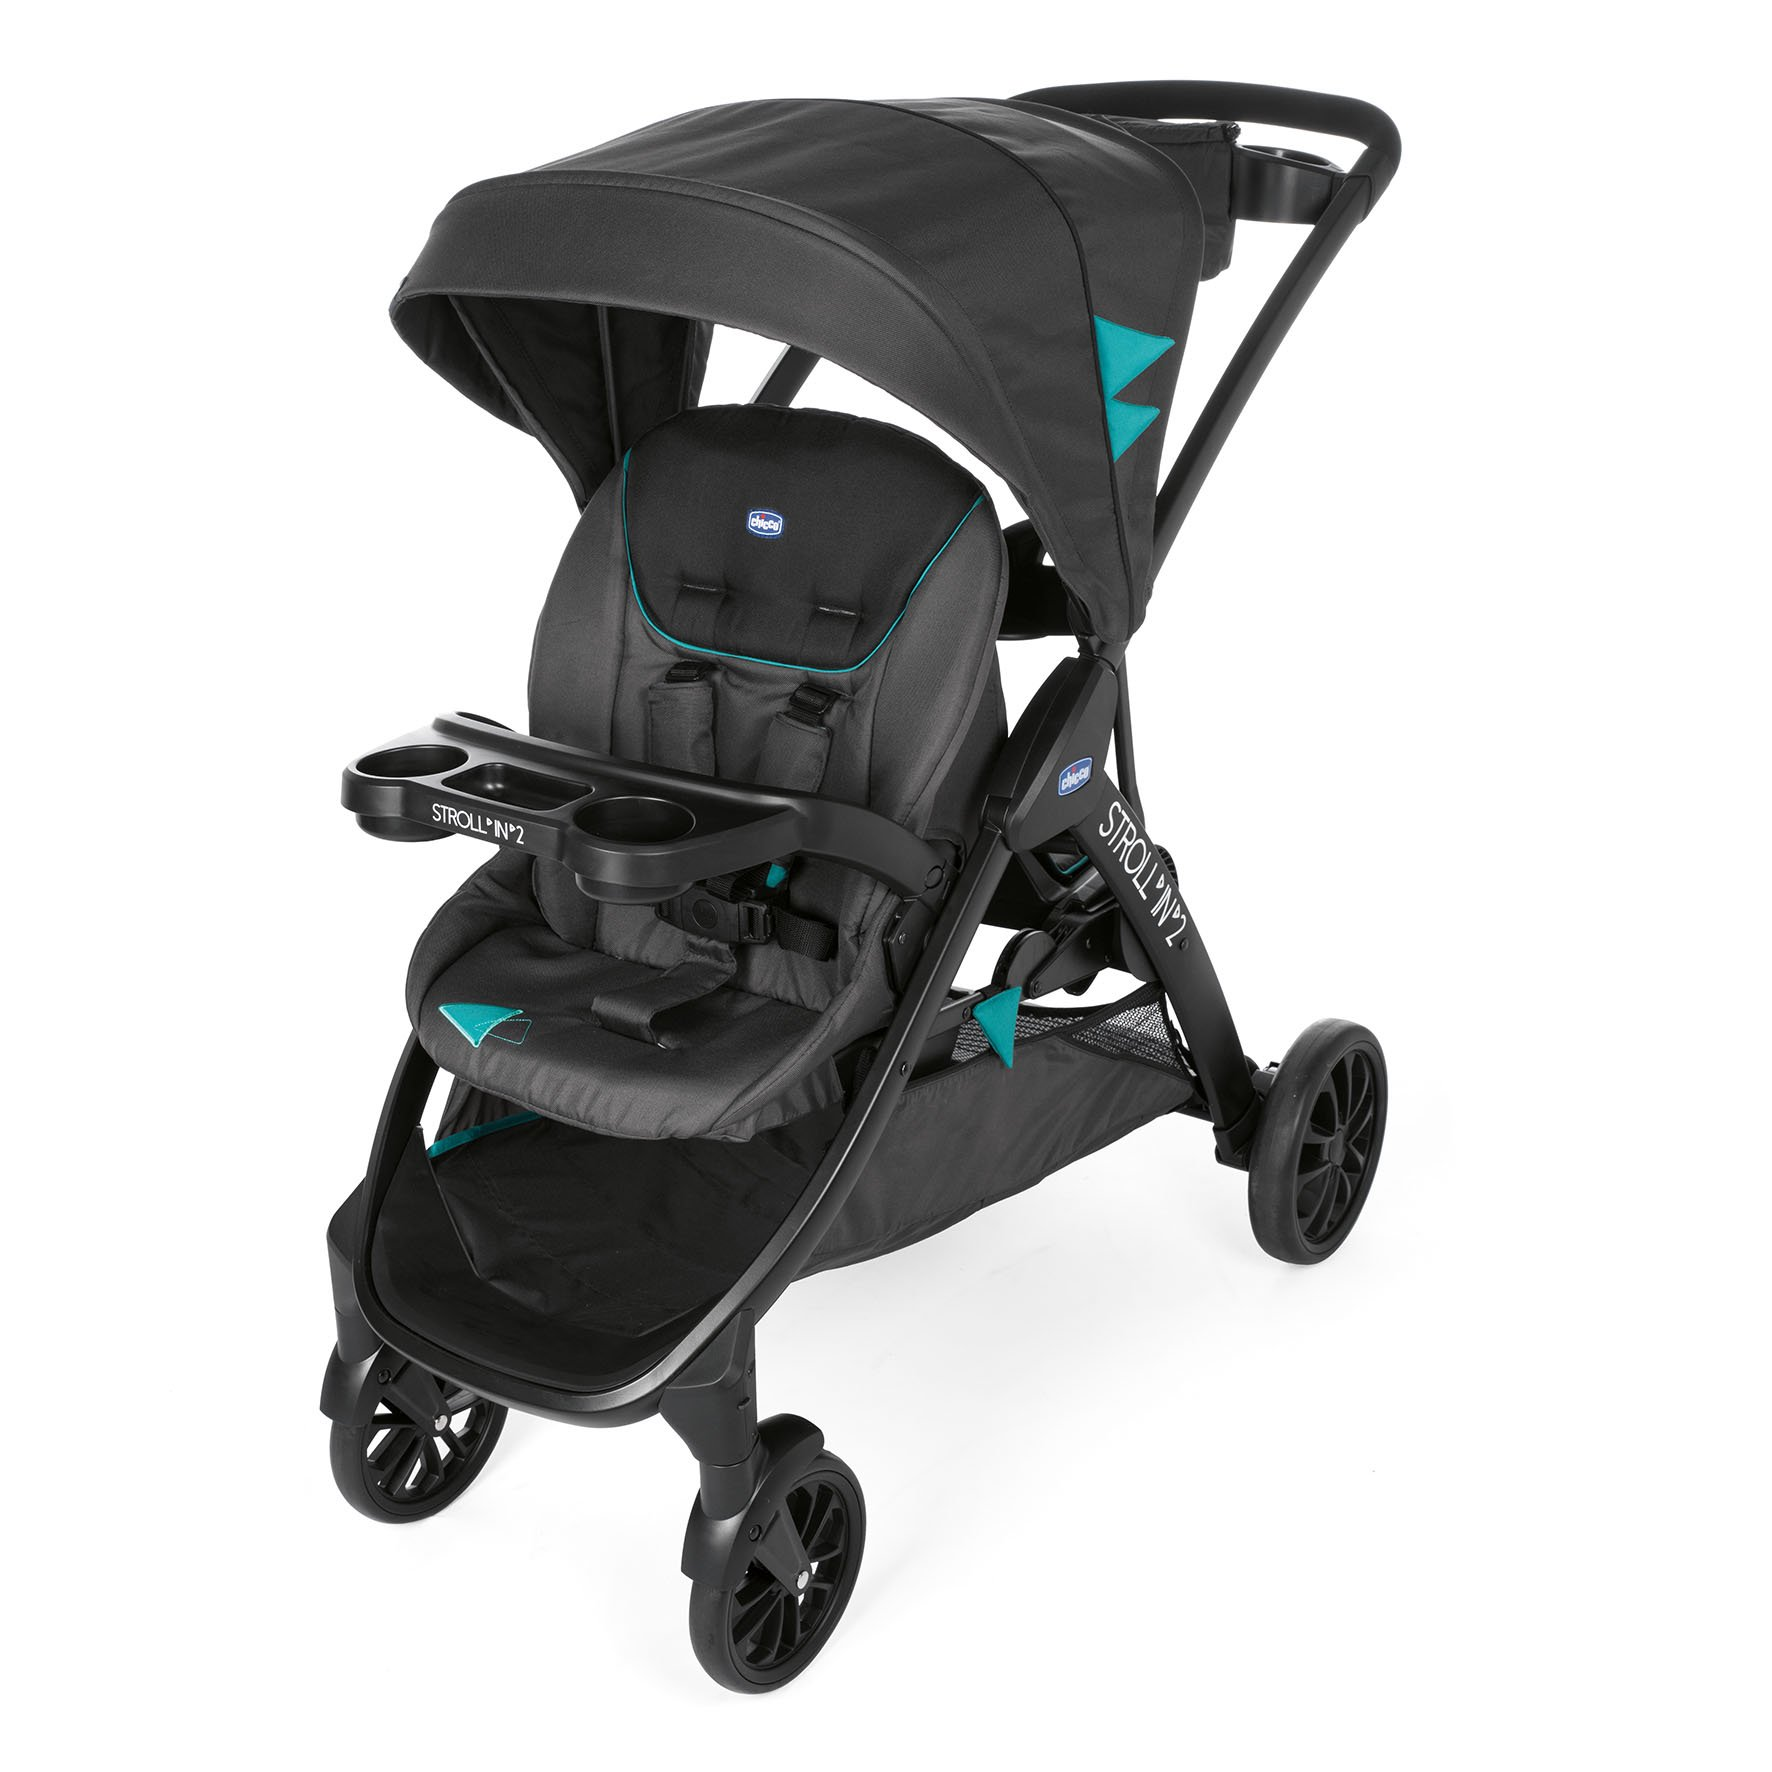 Image result for strollers